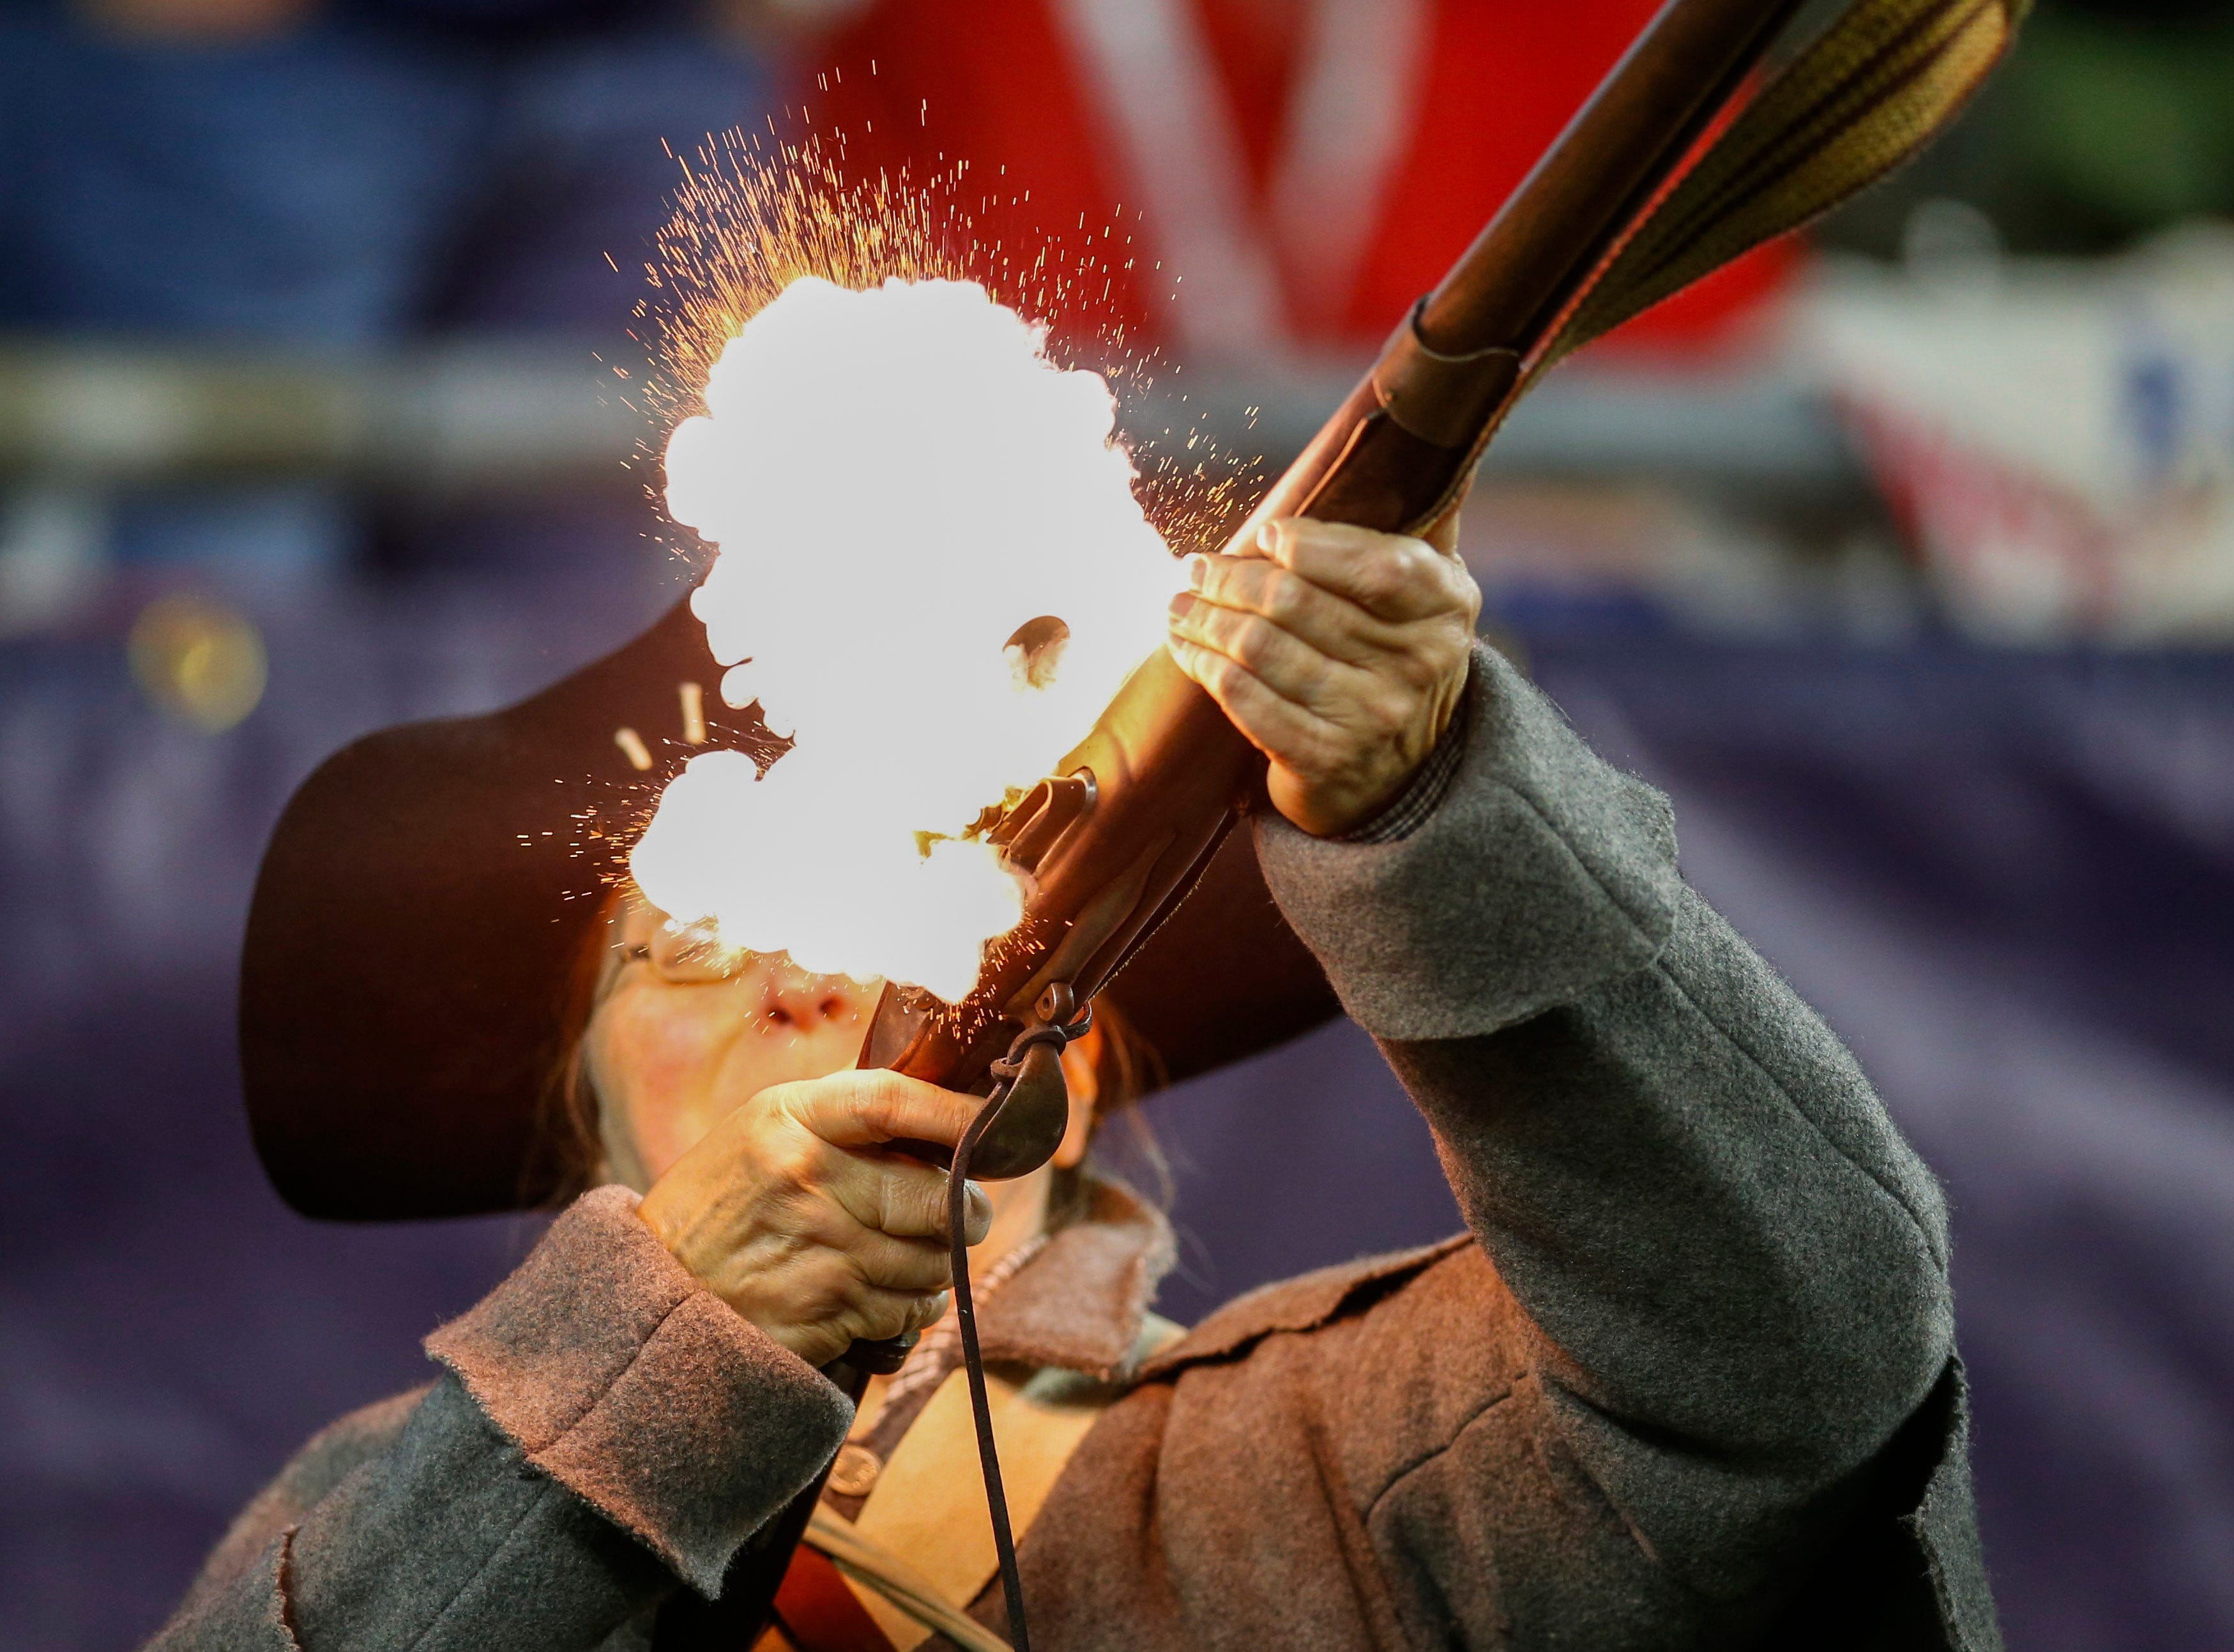 A New England Patriots end zone minuteman fires a musket during the game against the Kansas City Chiefs at Gillette Stadium.